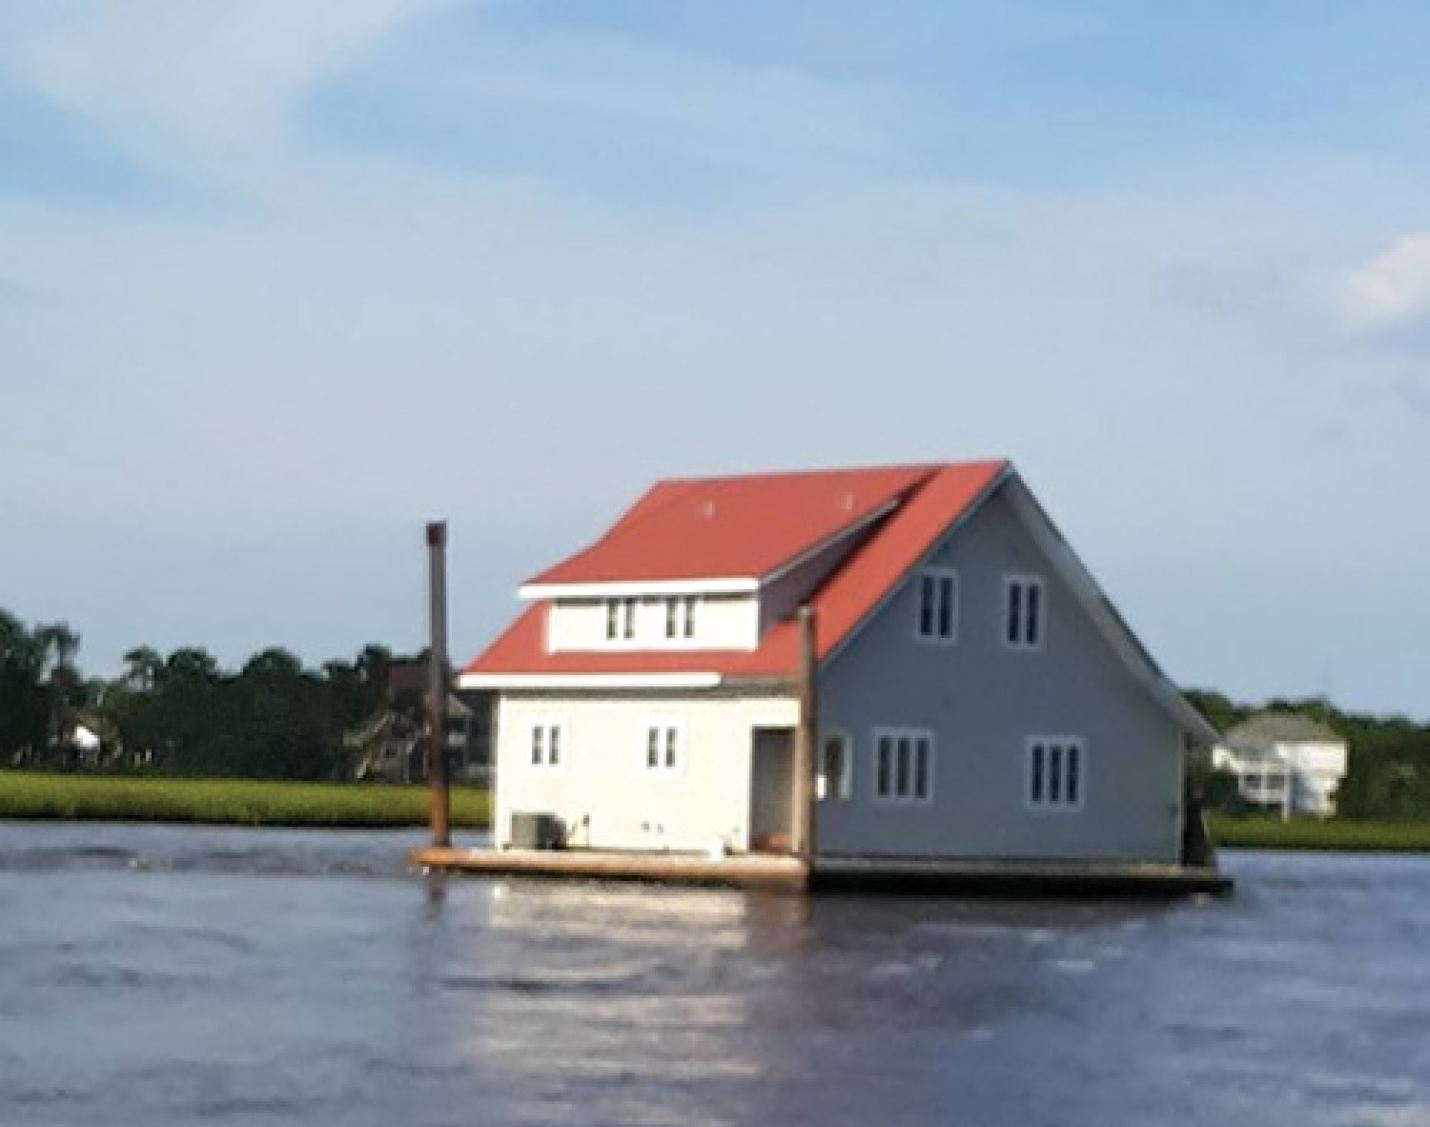 Carolina Beach Investigating A House, Barge Docked Over The Weekend